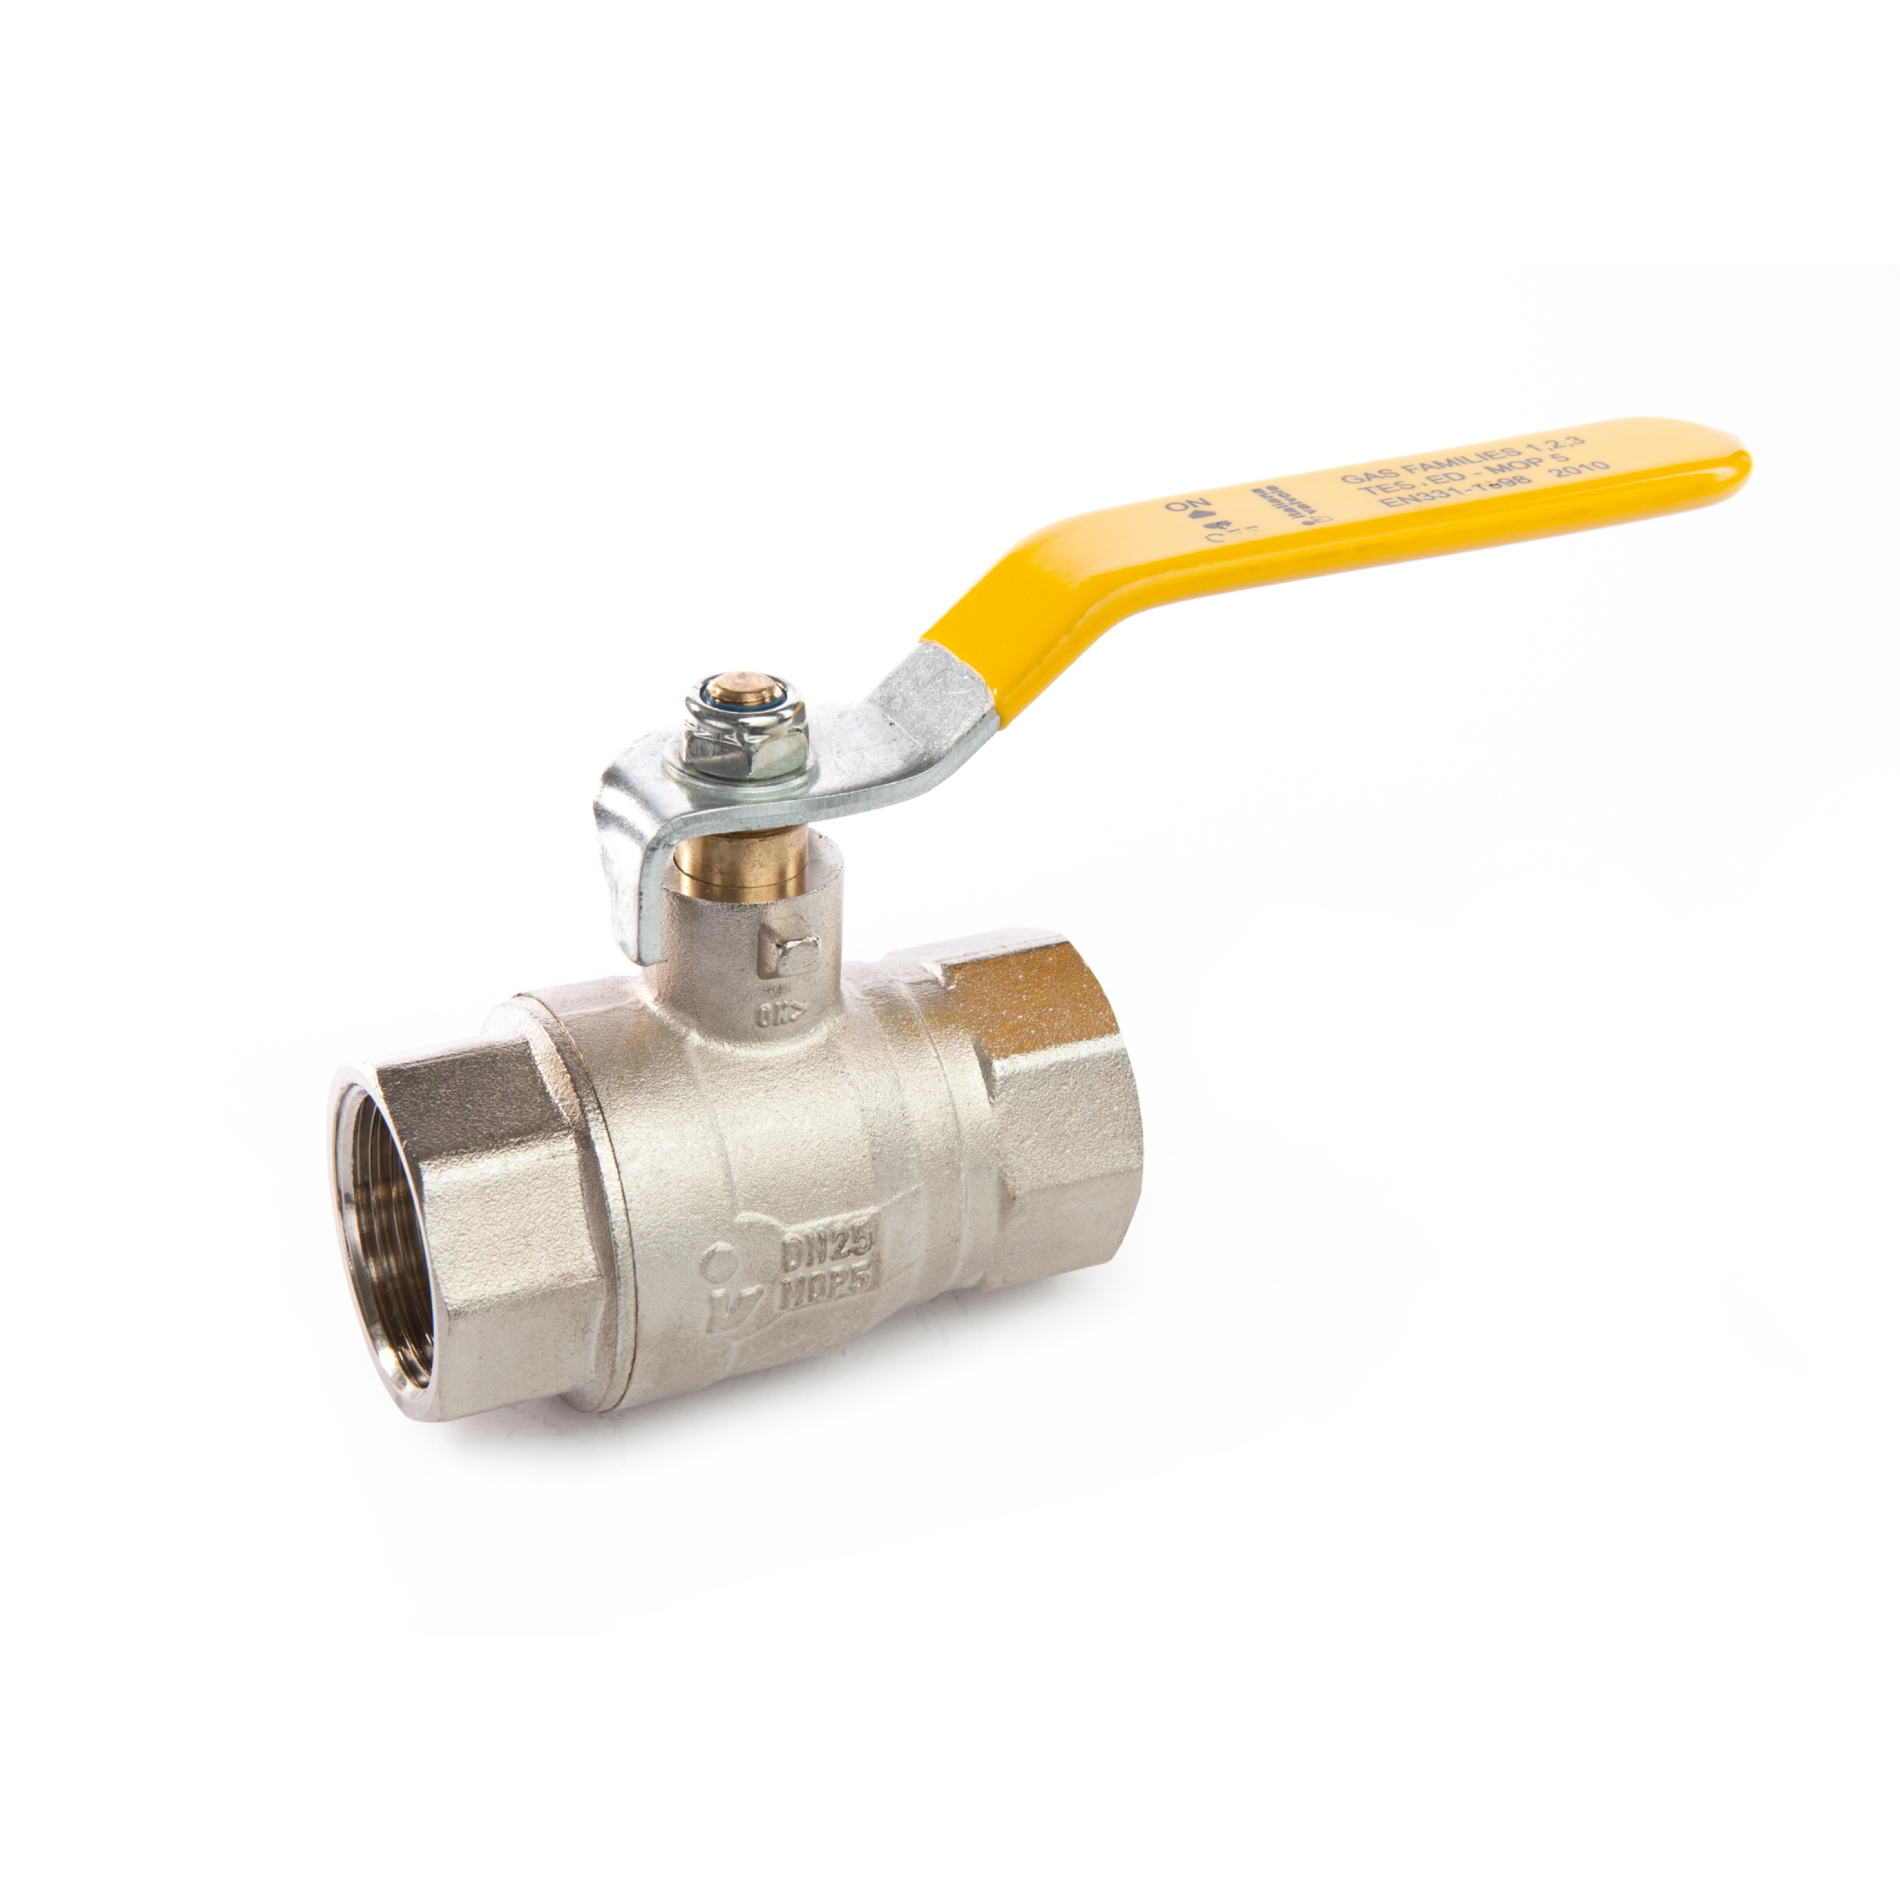 187 Valvola a sfera a passaggio totale per gas metano FxF con leva Full bore brass ball valve for gas FxF with lever